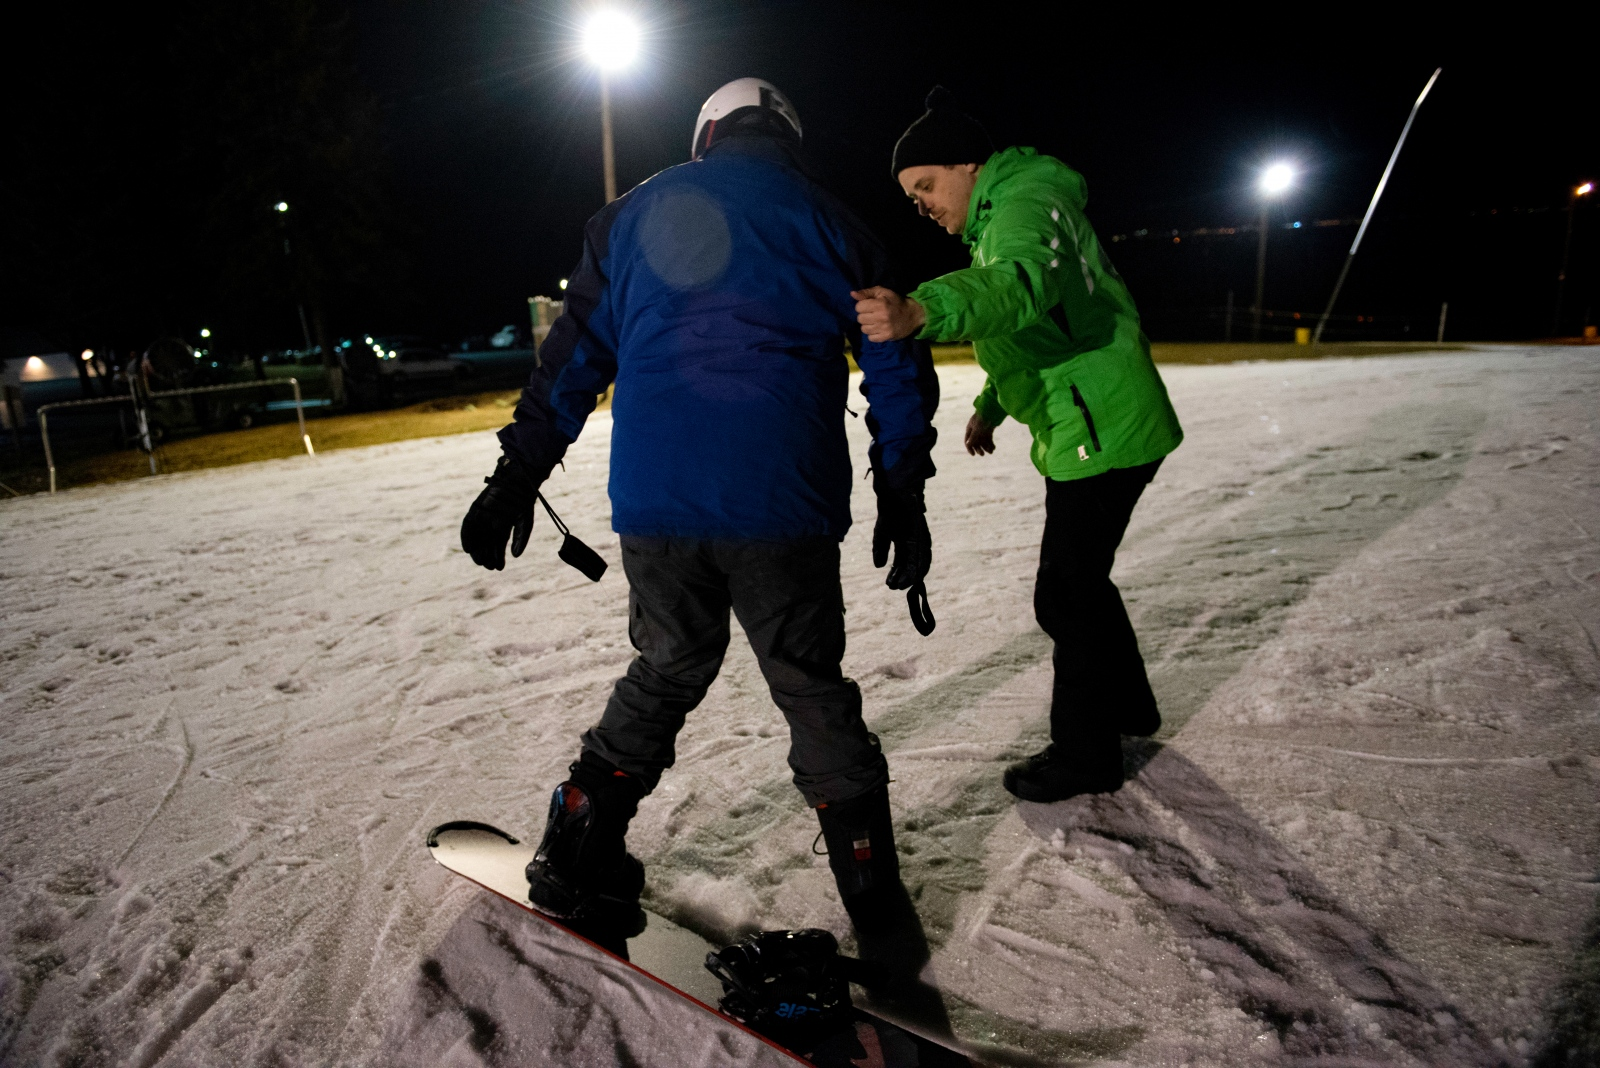 Christophe Cheroret helps his student Jim Zhang keep balance during the snowboarding class Monday, Feb 26, 2018, at Tussey Mountain in State College. Cheroret said he enjoyed teaching students a lot.